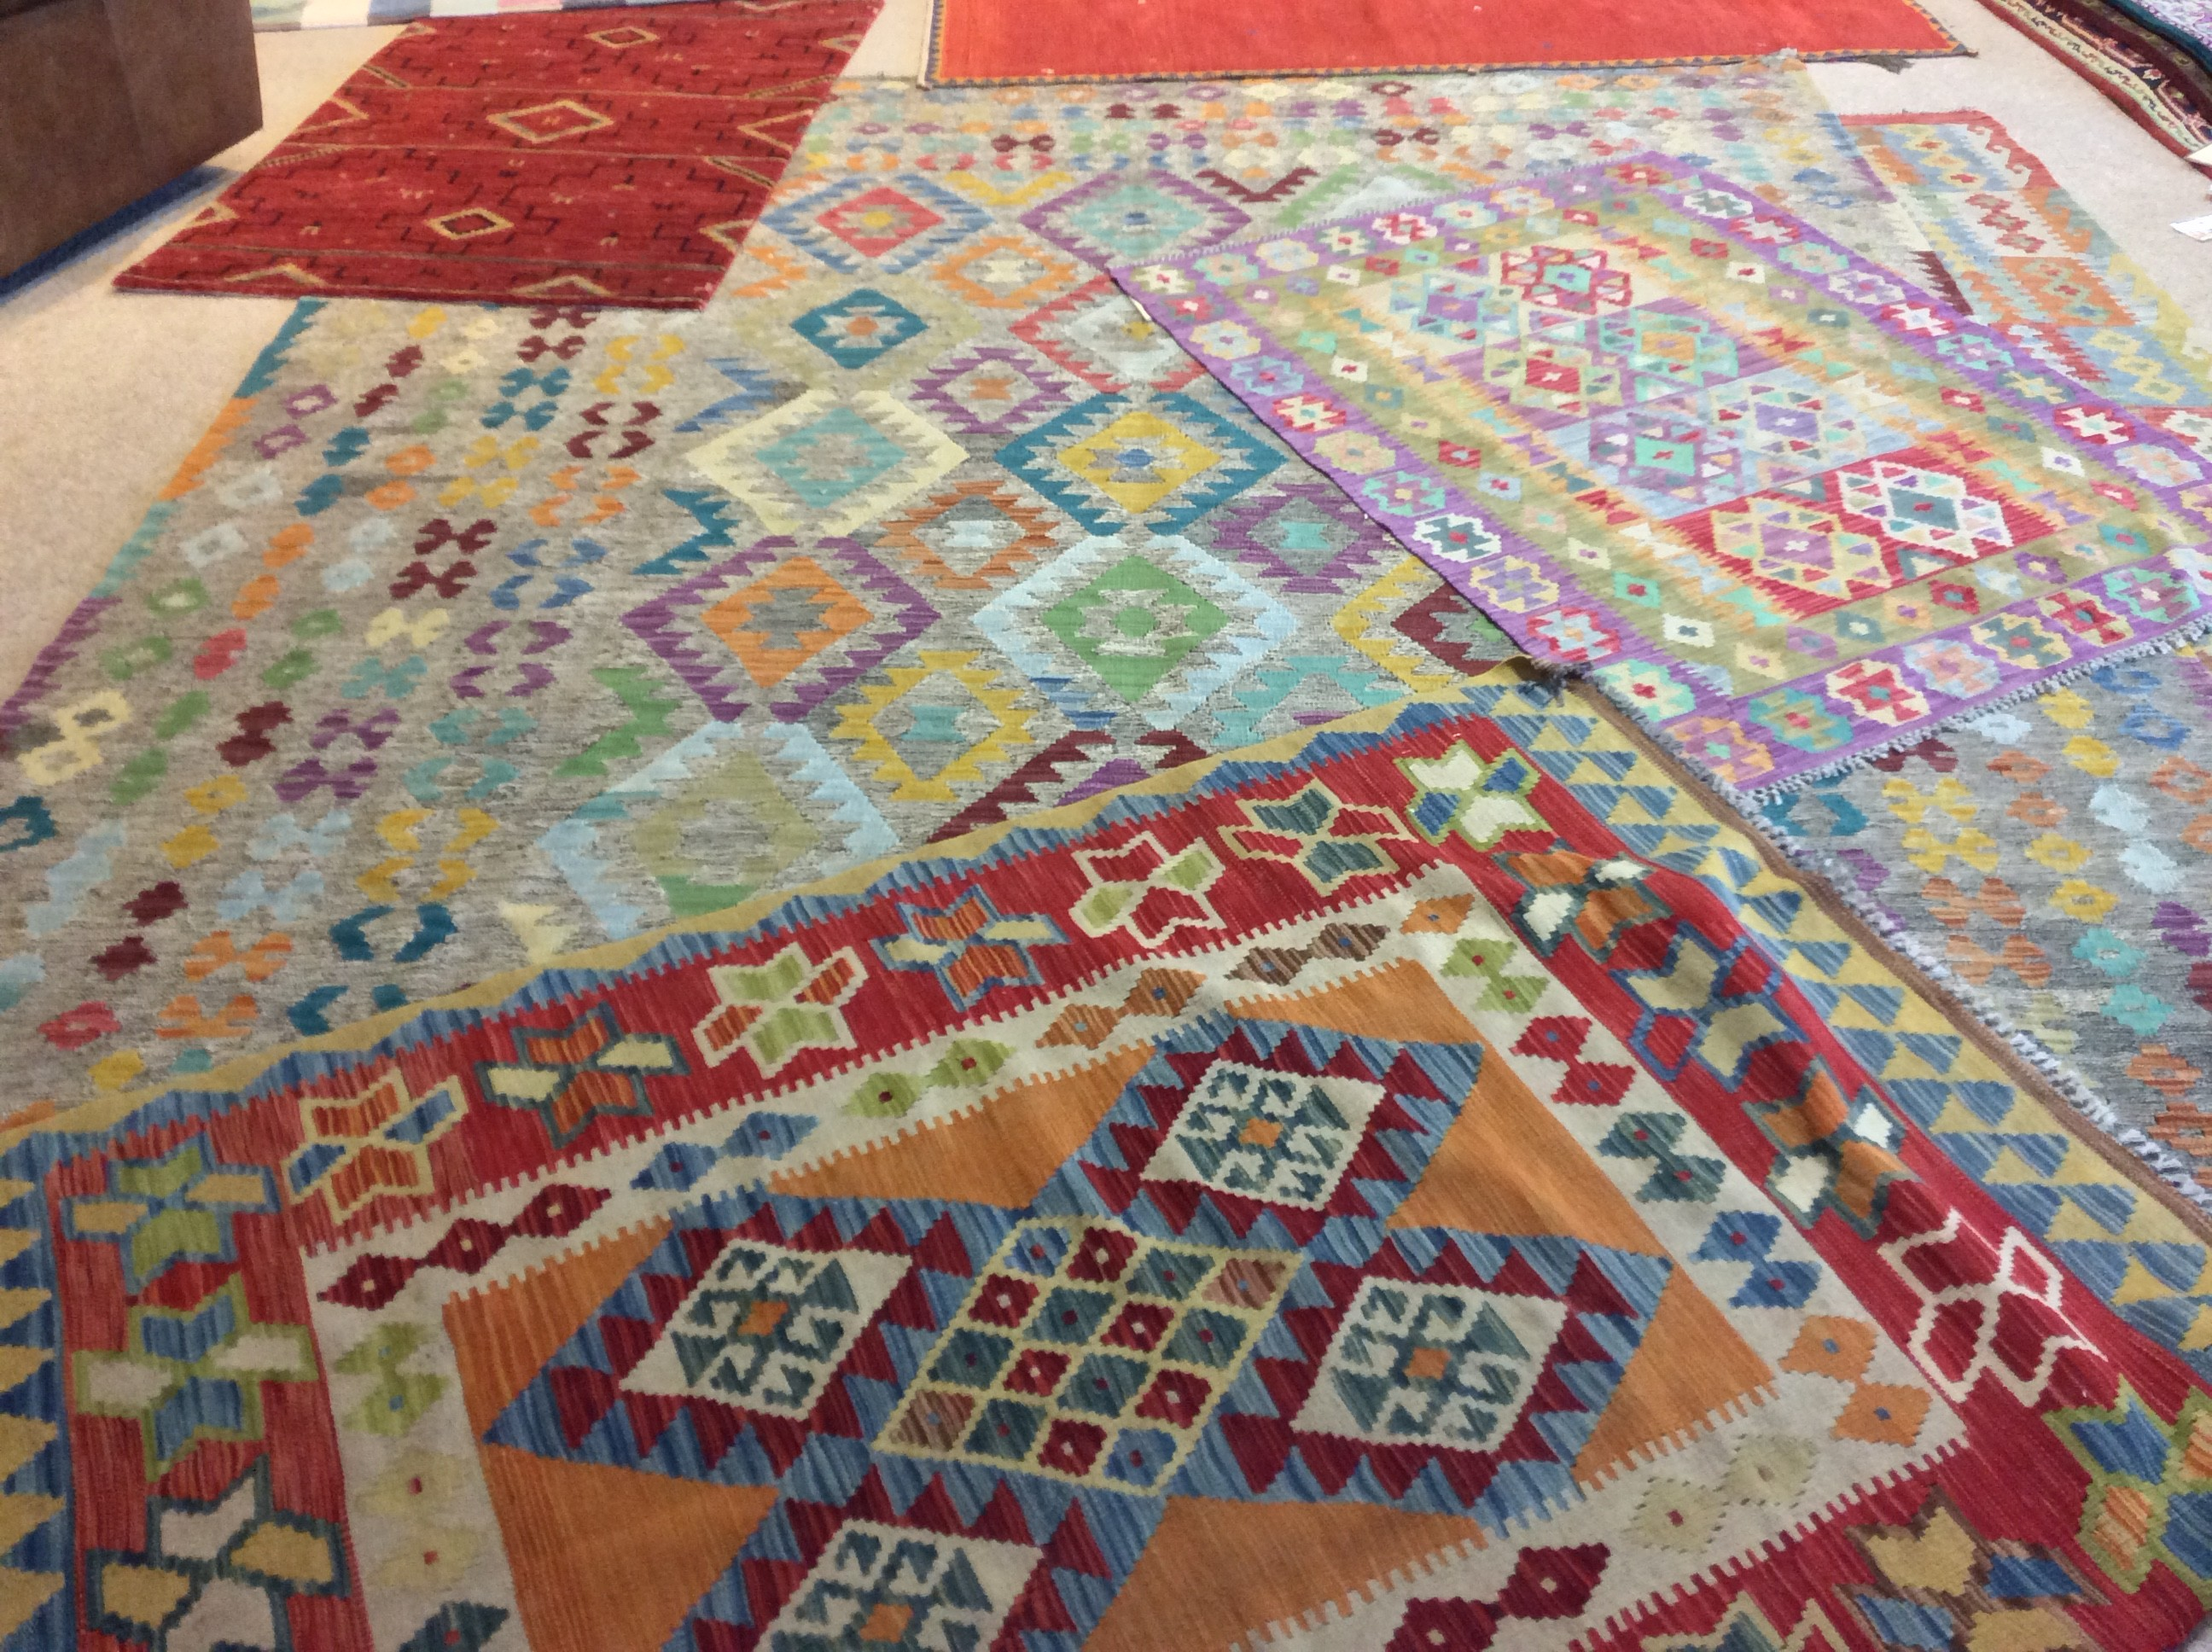 At Town And Country Furniture, We Have Vermontu0027s Largest Collection Of Over  400 Handmade Wool Rugs, Imported From All Over The World. No Two Alike.